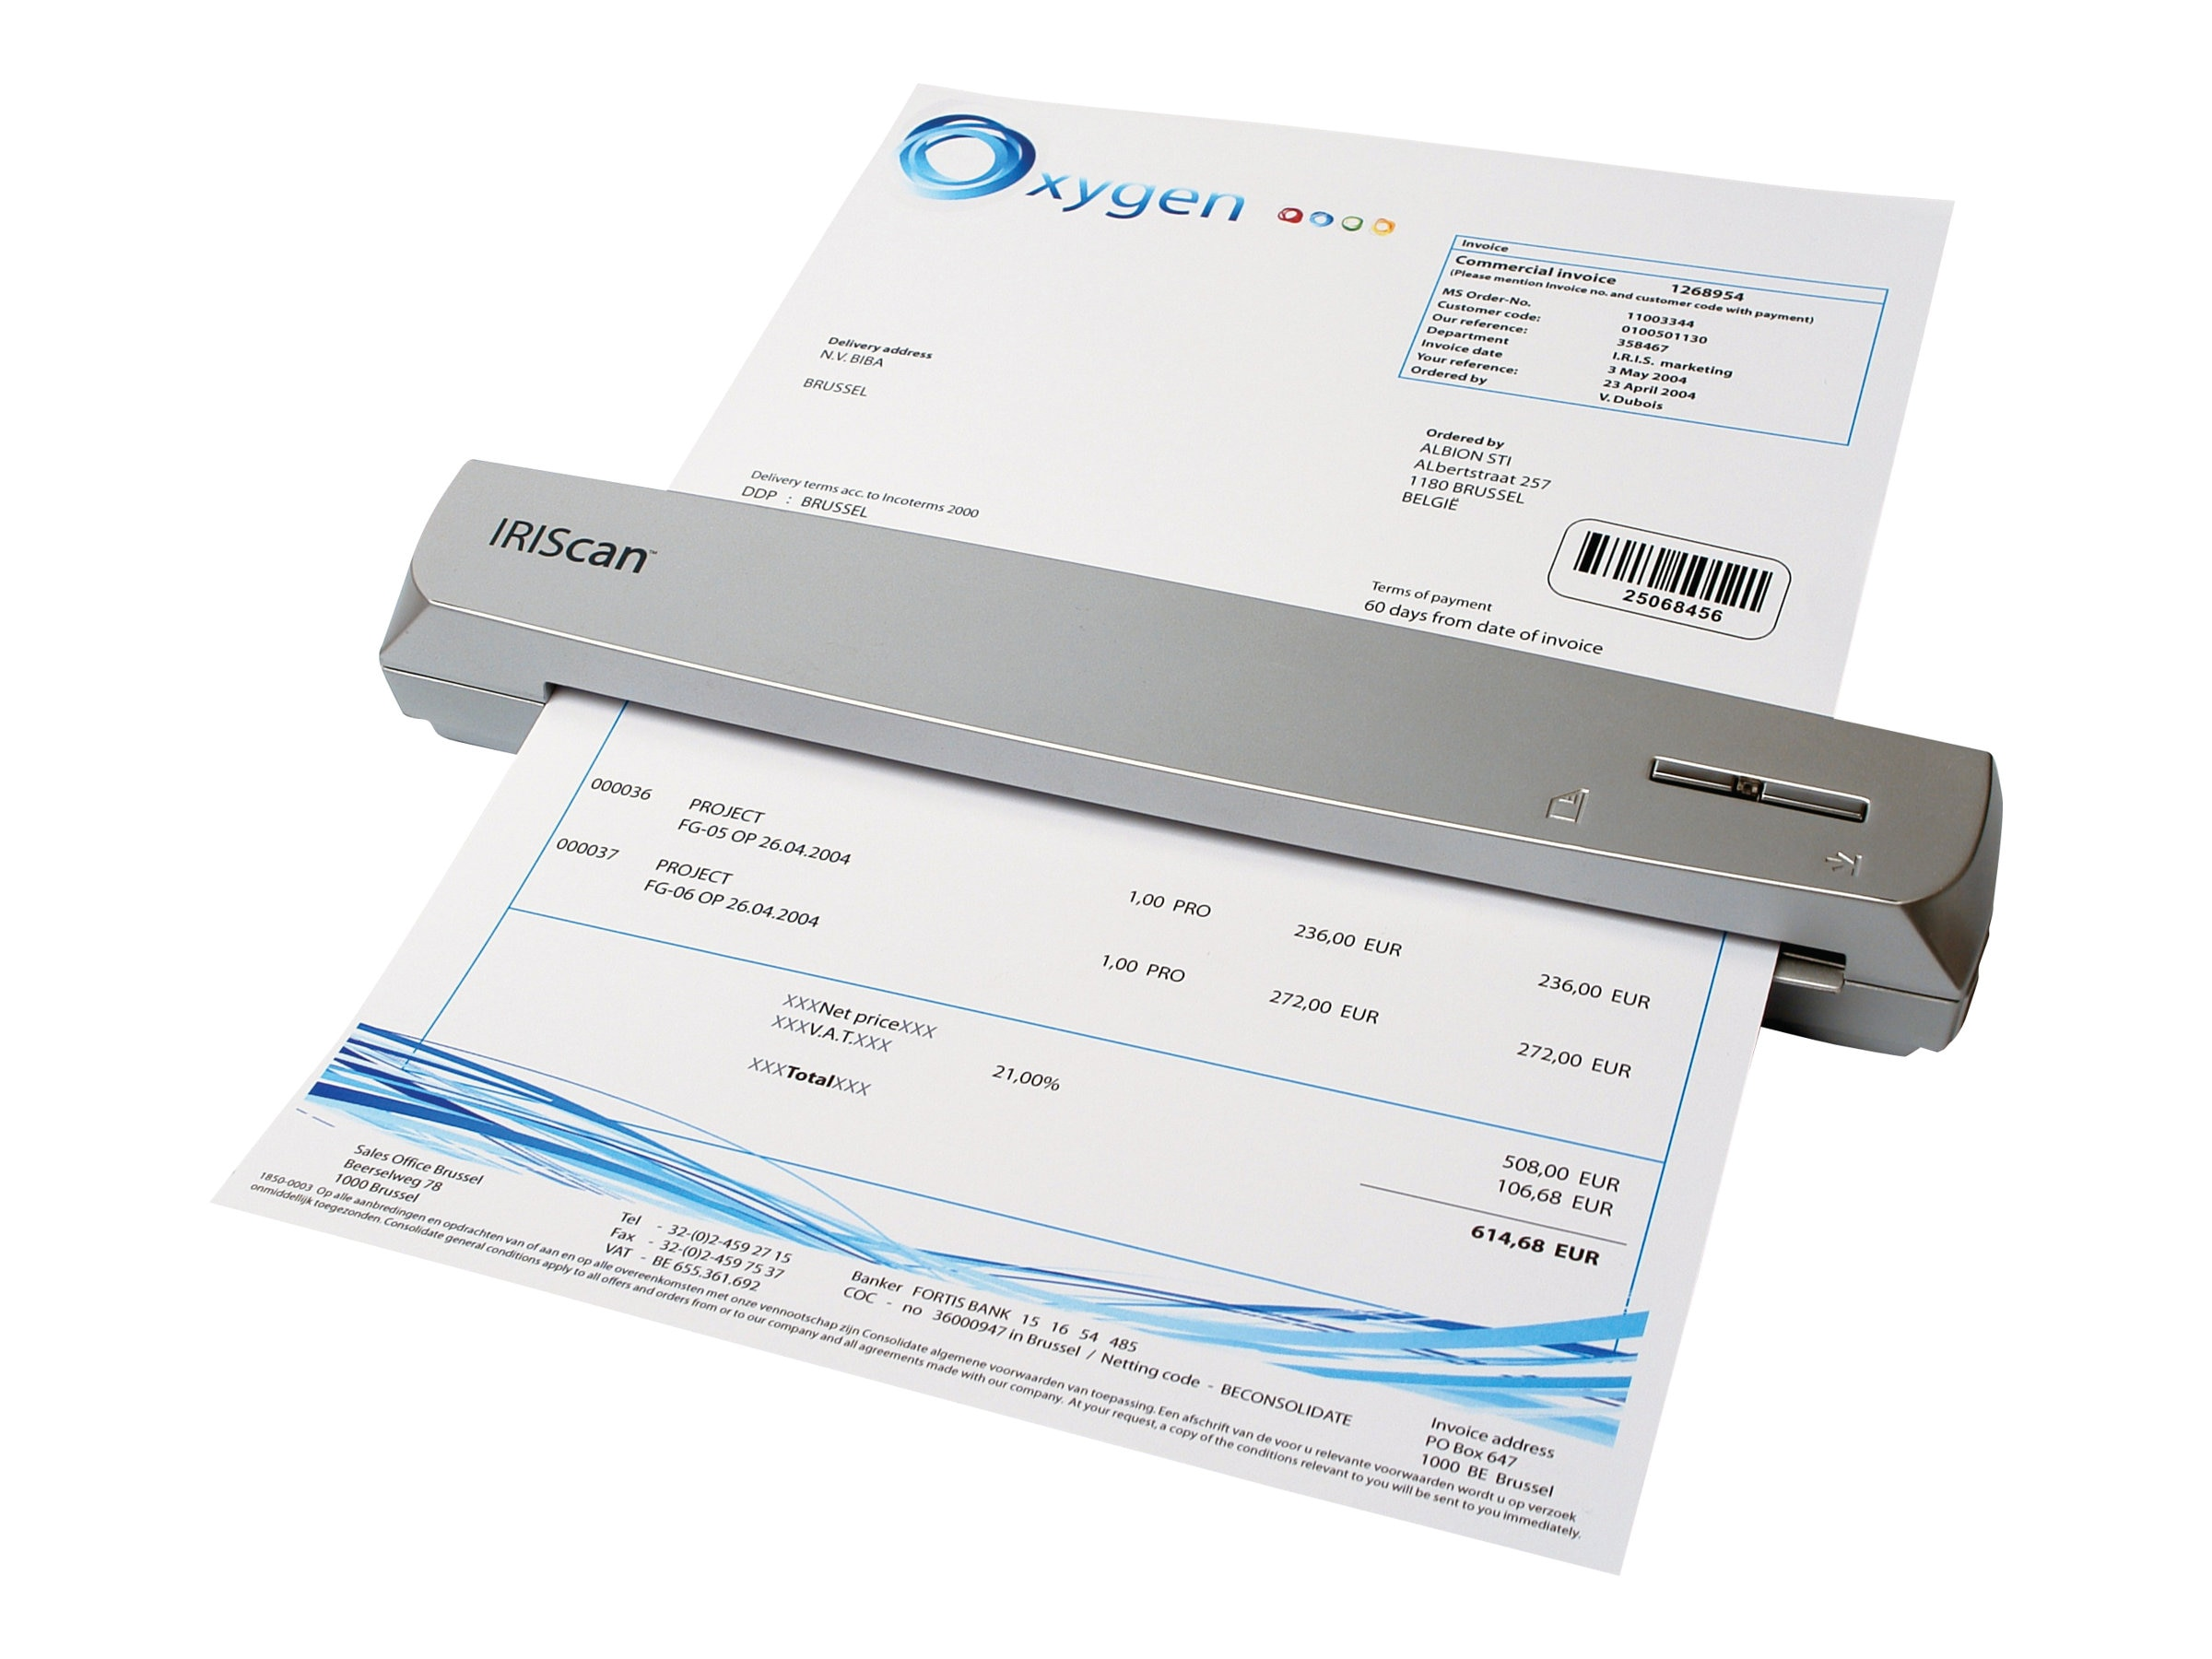 IRIS IRISCan Express 3 USB Multi-purpose Color Scanner, 457484, 14521131, Scanners